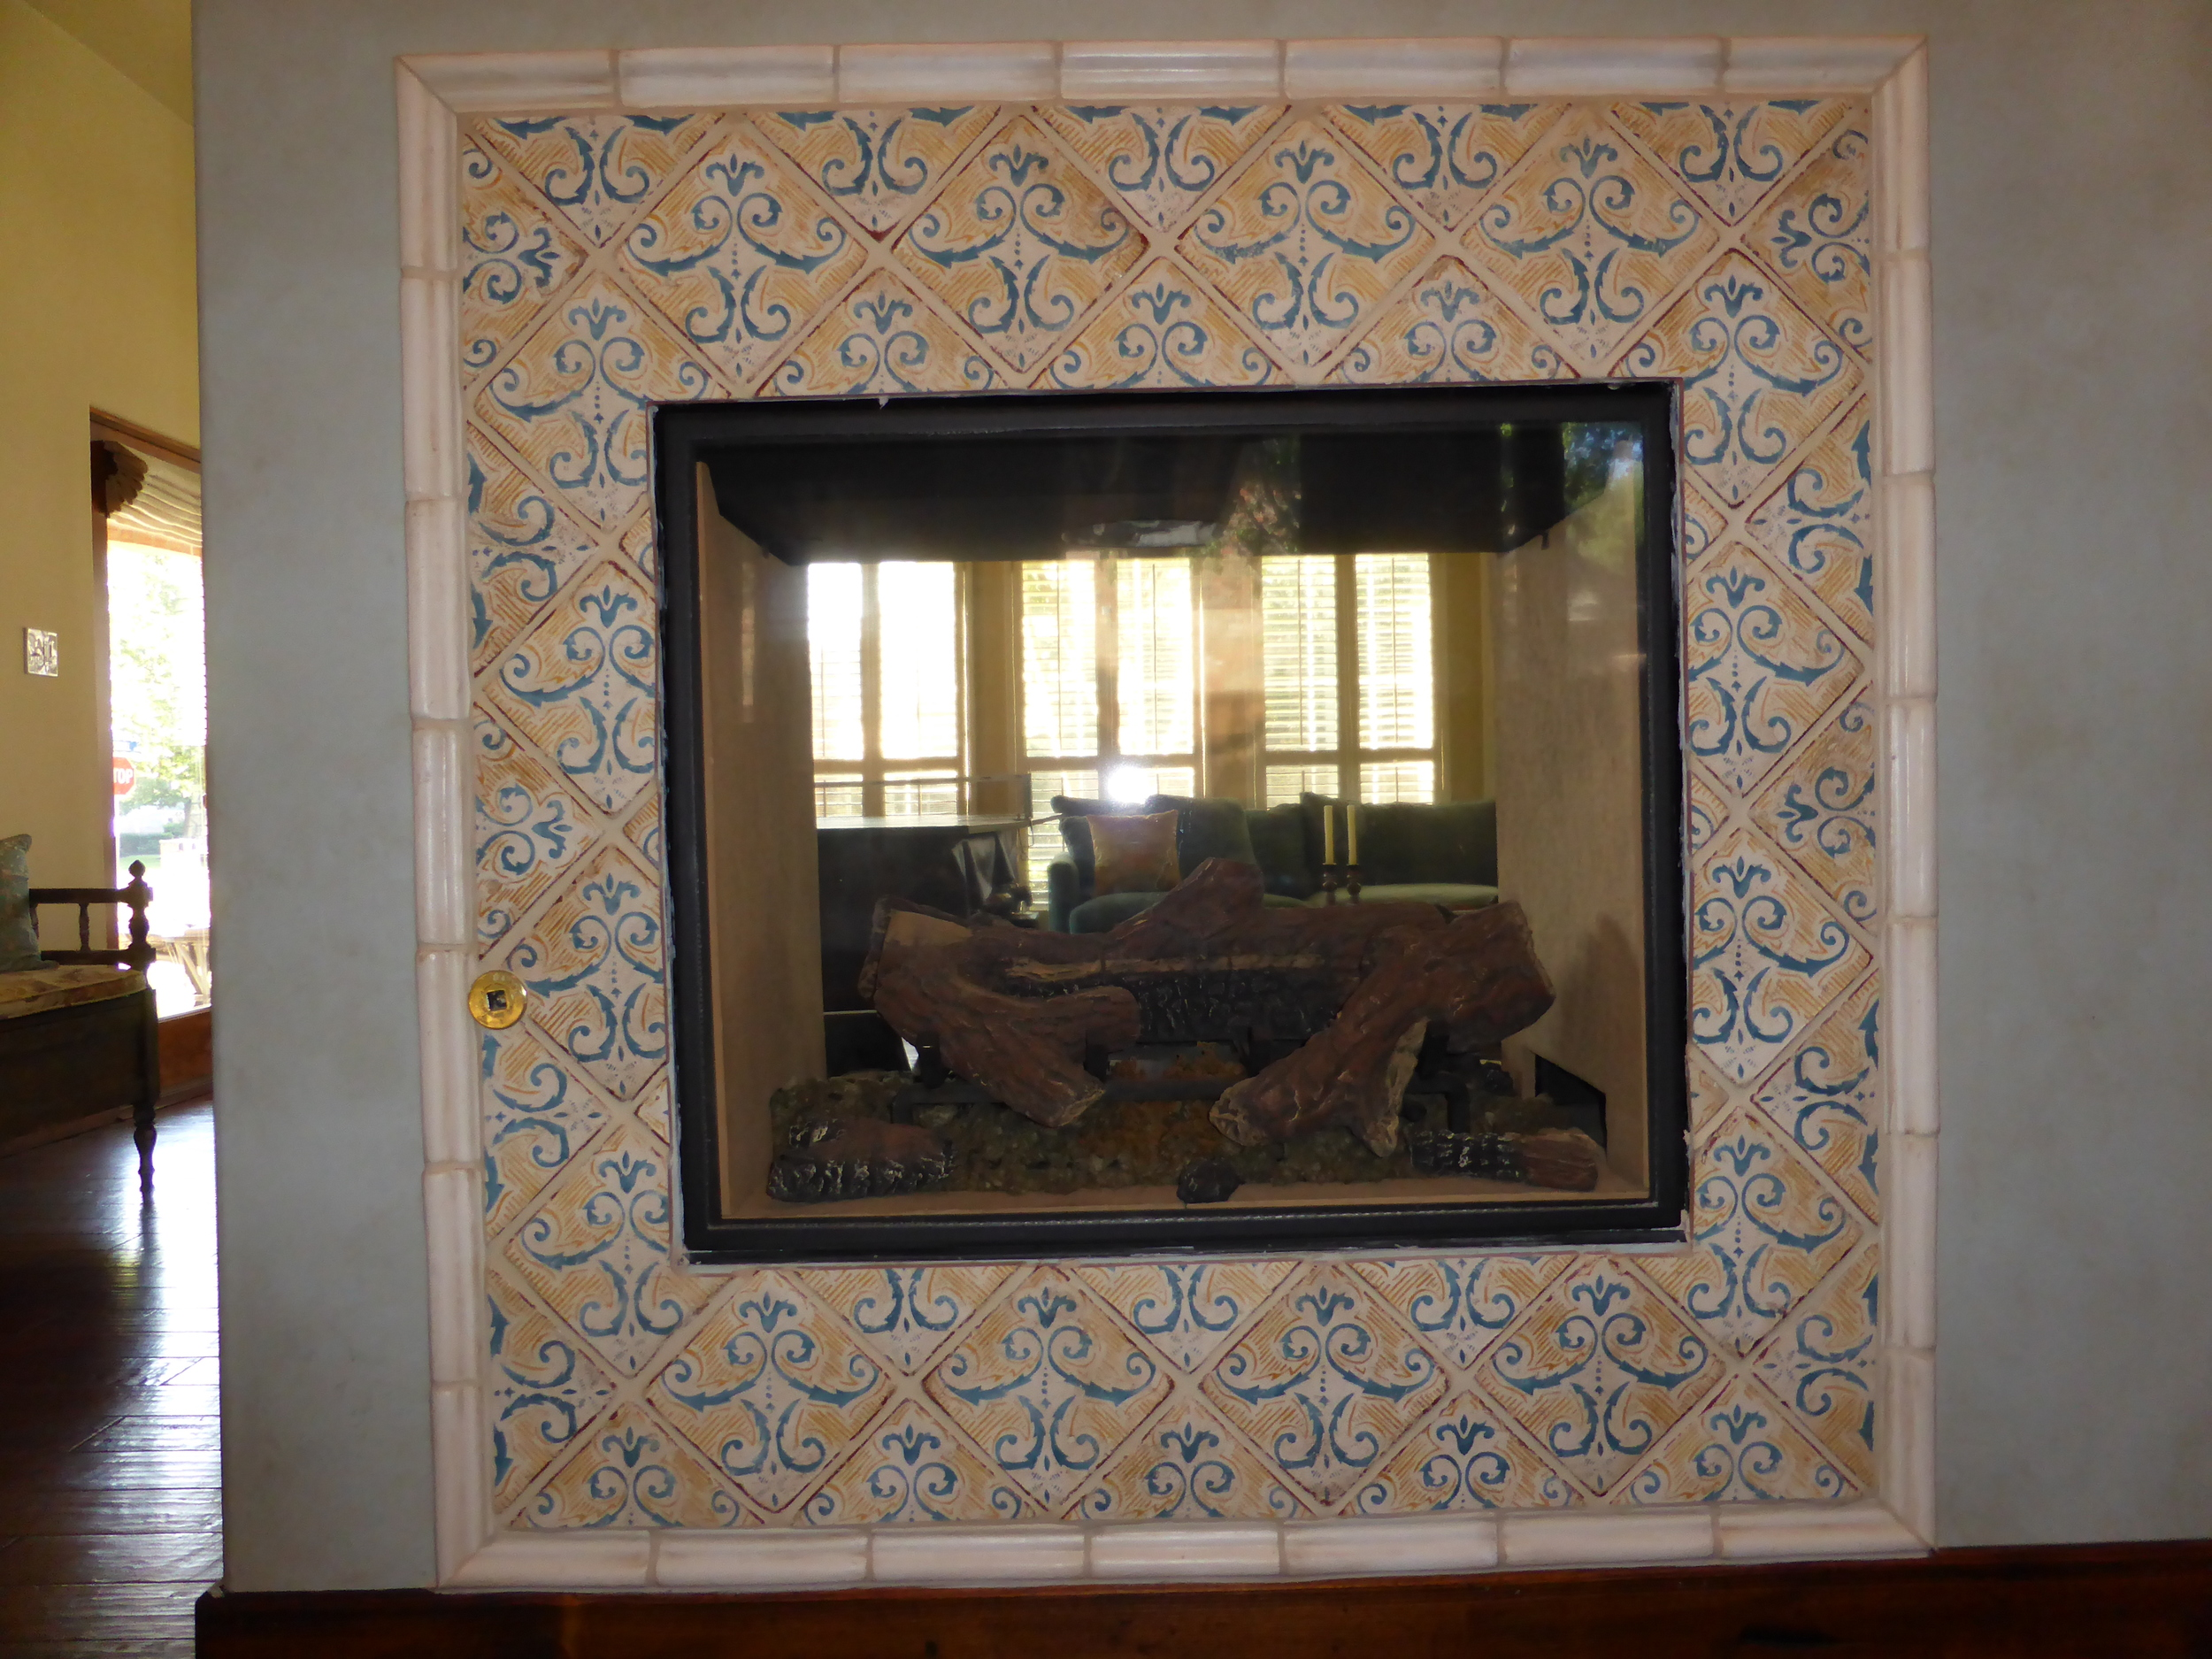 This was just a wall. Now it is a see-through fireplace. We busted it out so we could enjoy it from the kitchen nook. Just the push of a button.